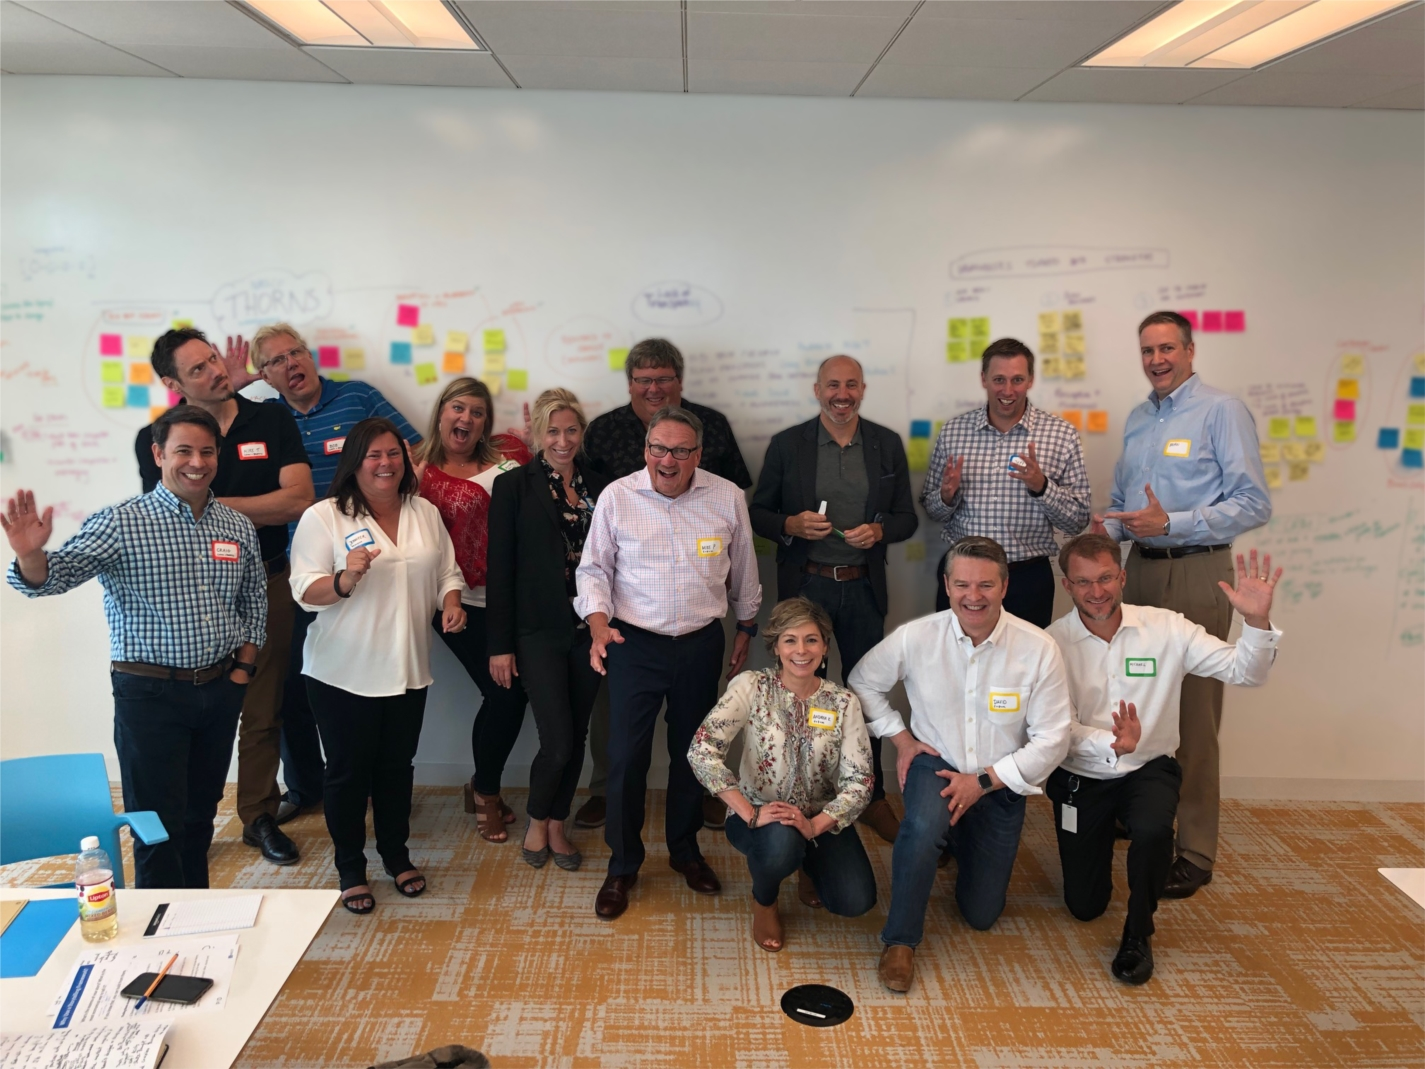 NASCO is always thinking about the future and innovation. Our teams recently visited the Accenture Innovation Studio in Atlanta for a Design Thinking Workshop.